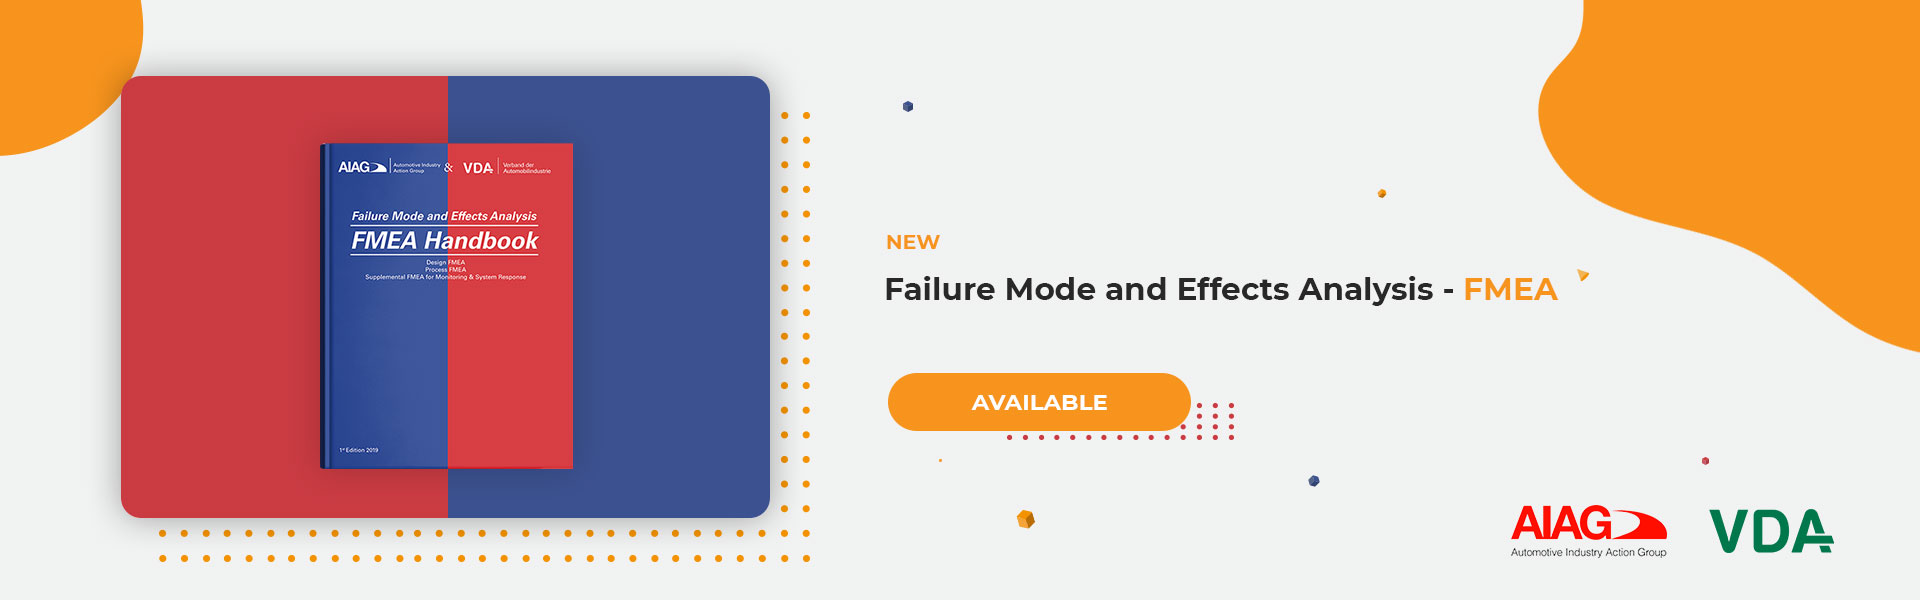 Failure Mode and Effects Analysis - FMEA